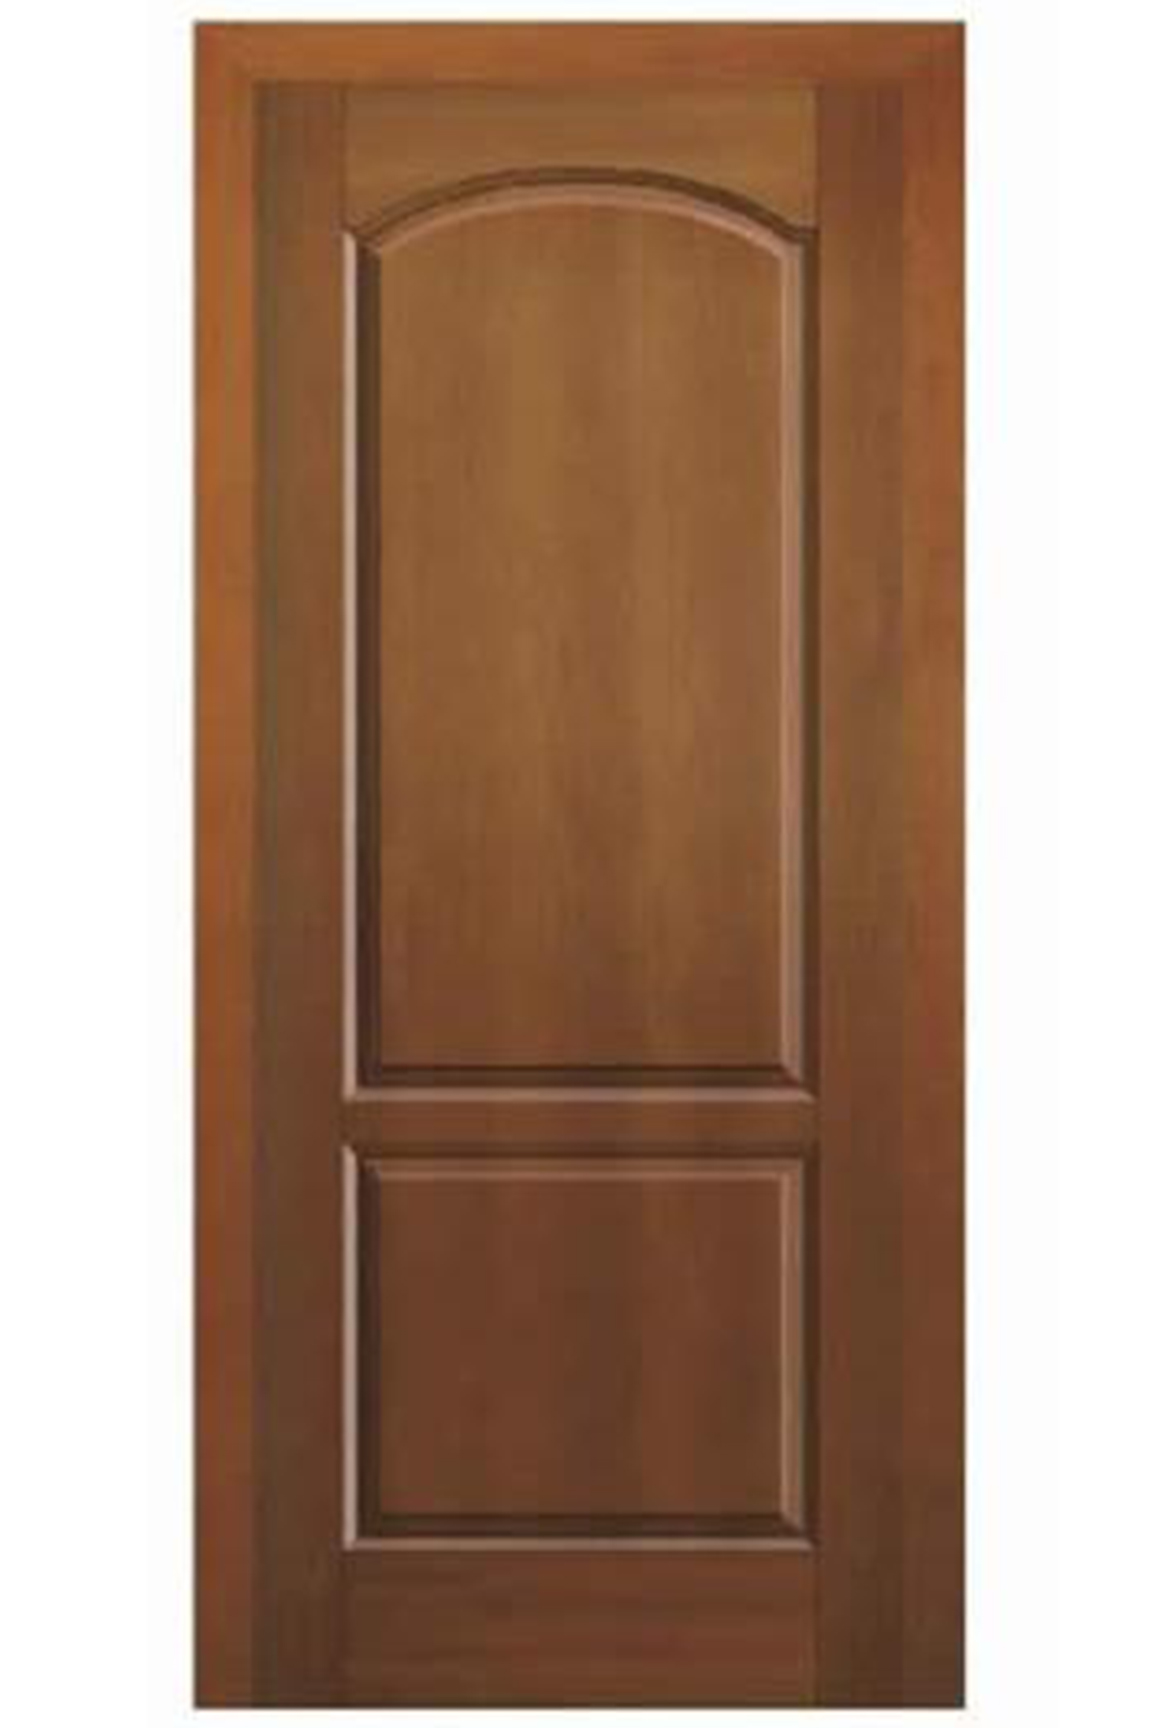 half designs main single with inserts residential door entrance solid wood doors glass entry suppliers interior